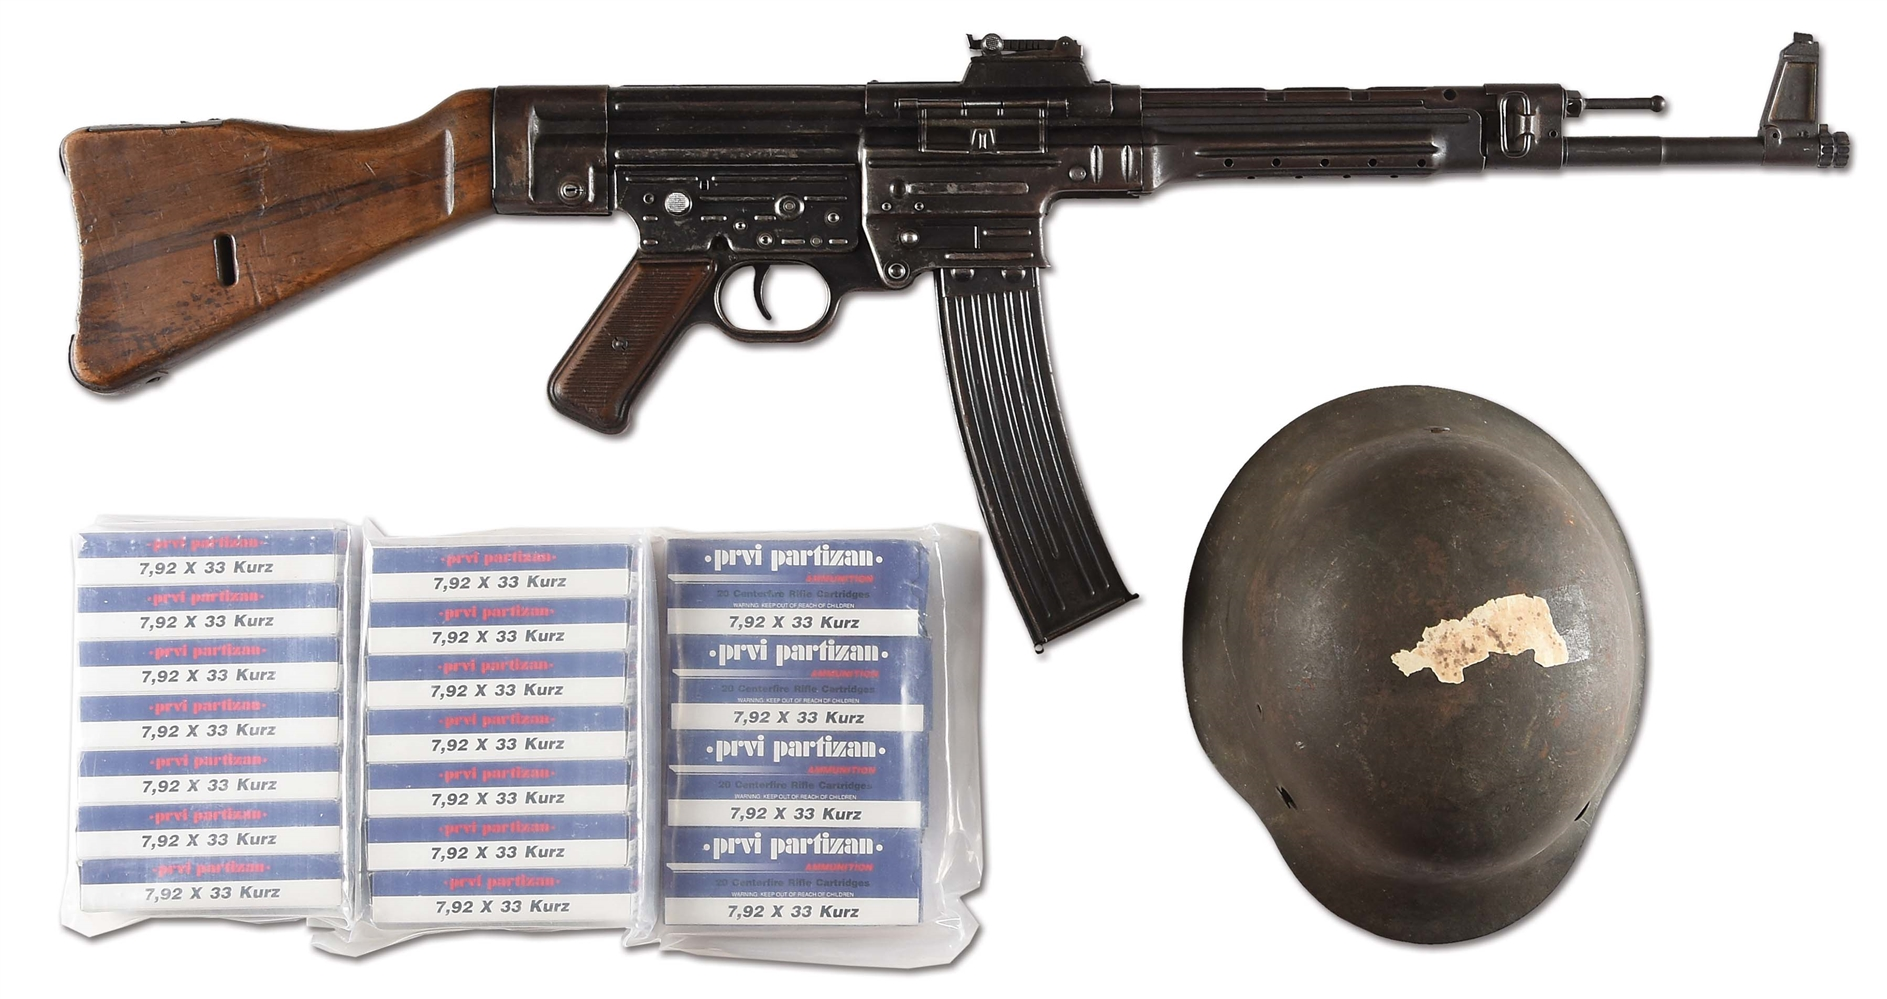 (N) HISTORIC GERMAN WW2 EARLY MP 43 MACHINE GUN WITH CAPTURE PROVENANCE & HELMET (CURIO & RELIC)